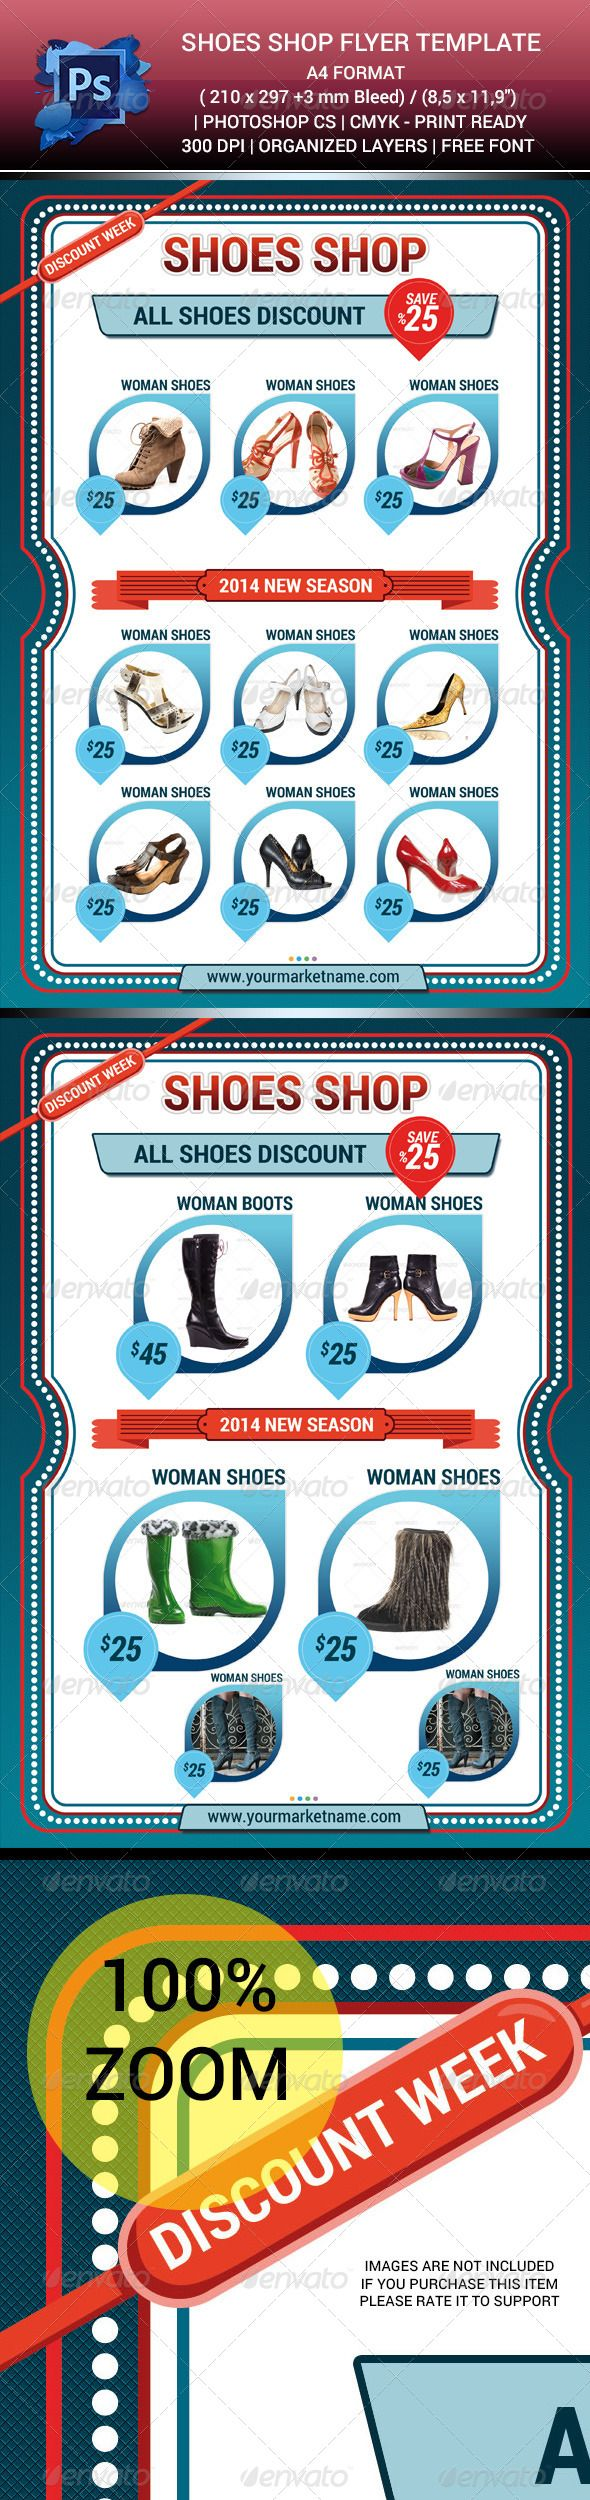 "Shoes Shop Sales Flyer Template V.1 #GraphicRiver NEW DESIGN SHOES SHOP SALES FLYER TEMPALET V.1 PSD 2 PSD FILES CMYK COLORS 2 PAGES (FRONT BACK) 300 DPI A4 FORMAT ( 210×297 +3 mm Bleed) / (8,5×11,9"") EDITABLE TEXT EDITABLE LOGO HIGH RESOLUTION PHOTOS NOT INCLUDED (USE YOUR OWN PHOTOS) CREATED IN PHOTOSHOP CS6 HELP TEXT ARE HERE…................ Completely editable and print Ready. 1* To change text and text color: Double click the ""T"" thumbnail on the layer to highlight the text you want to…"